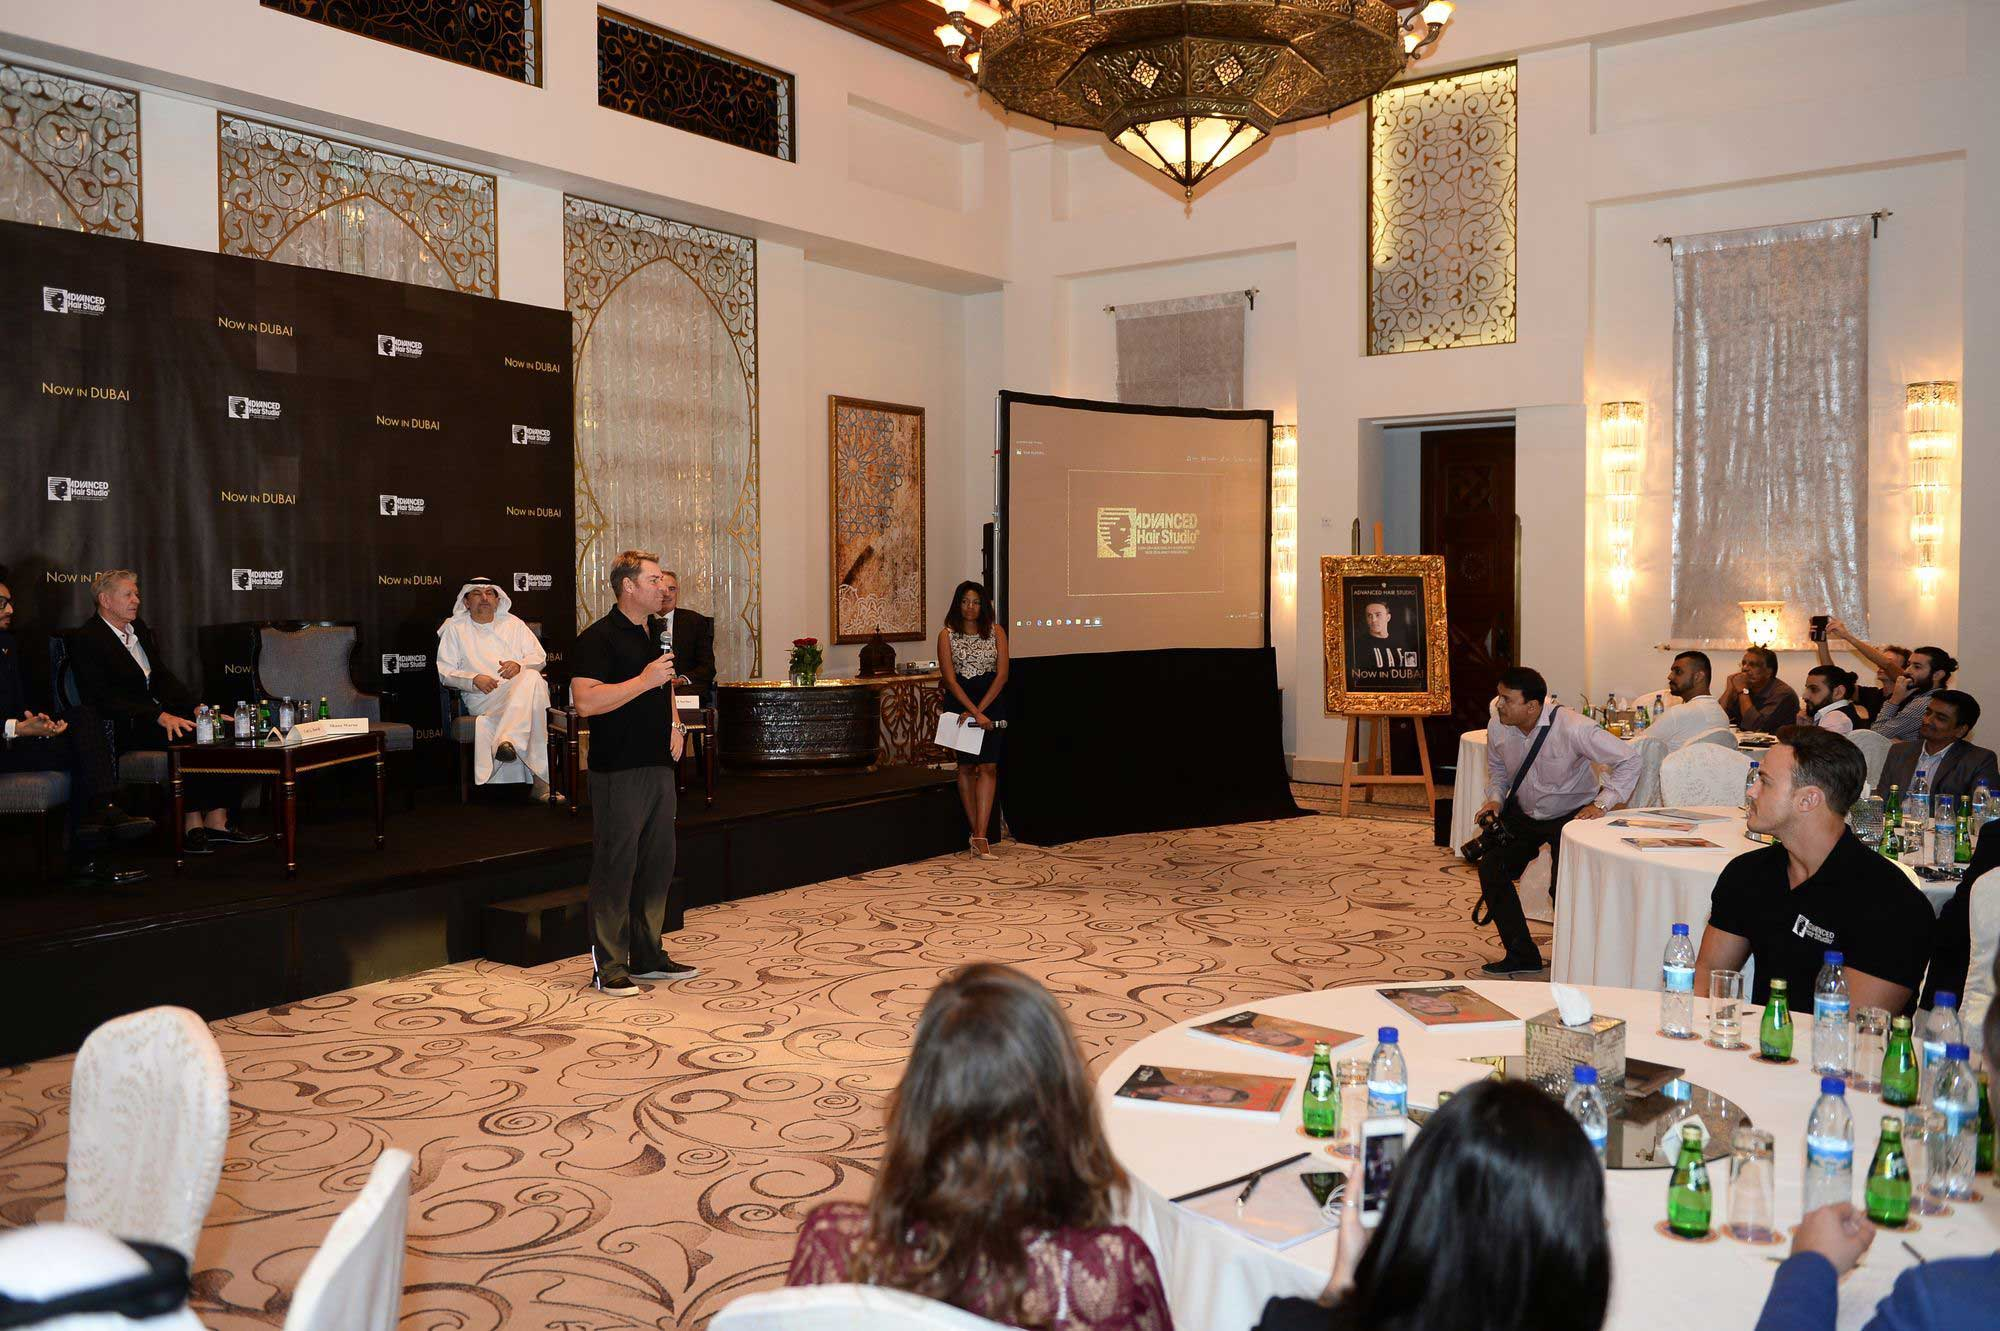 Advanced hair studio dubai media launch